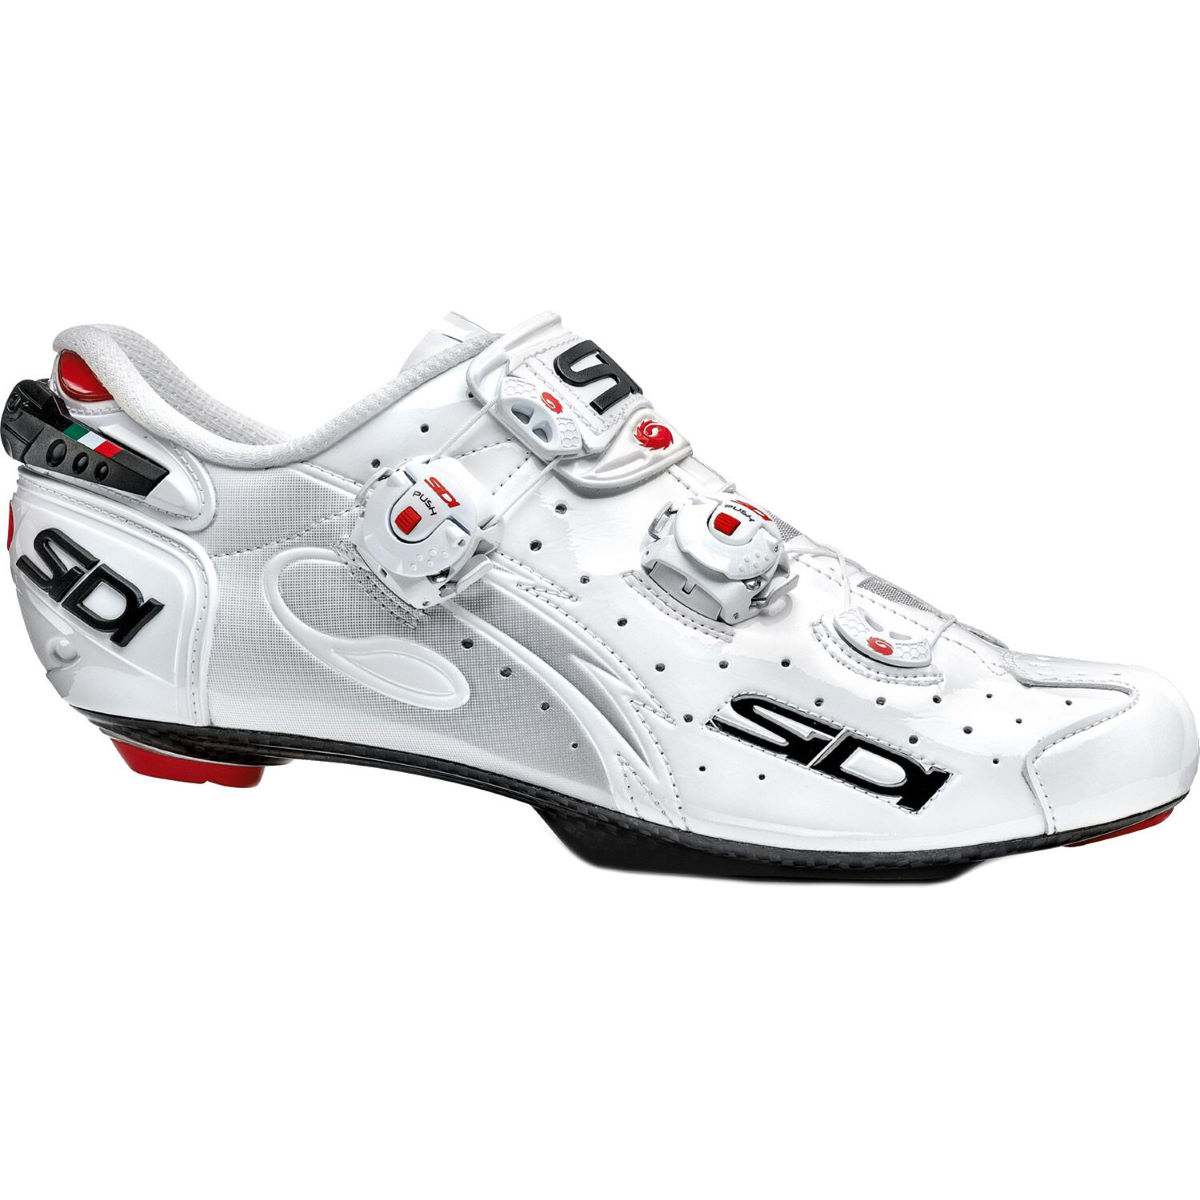 Chaussures de route Sidi Wire Carbon SP (Speedplay) - 40 Blanc/Blanc